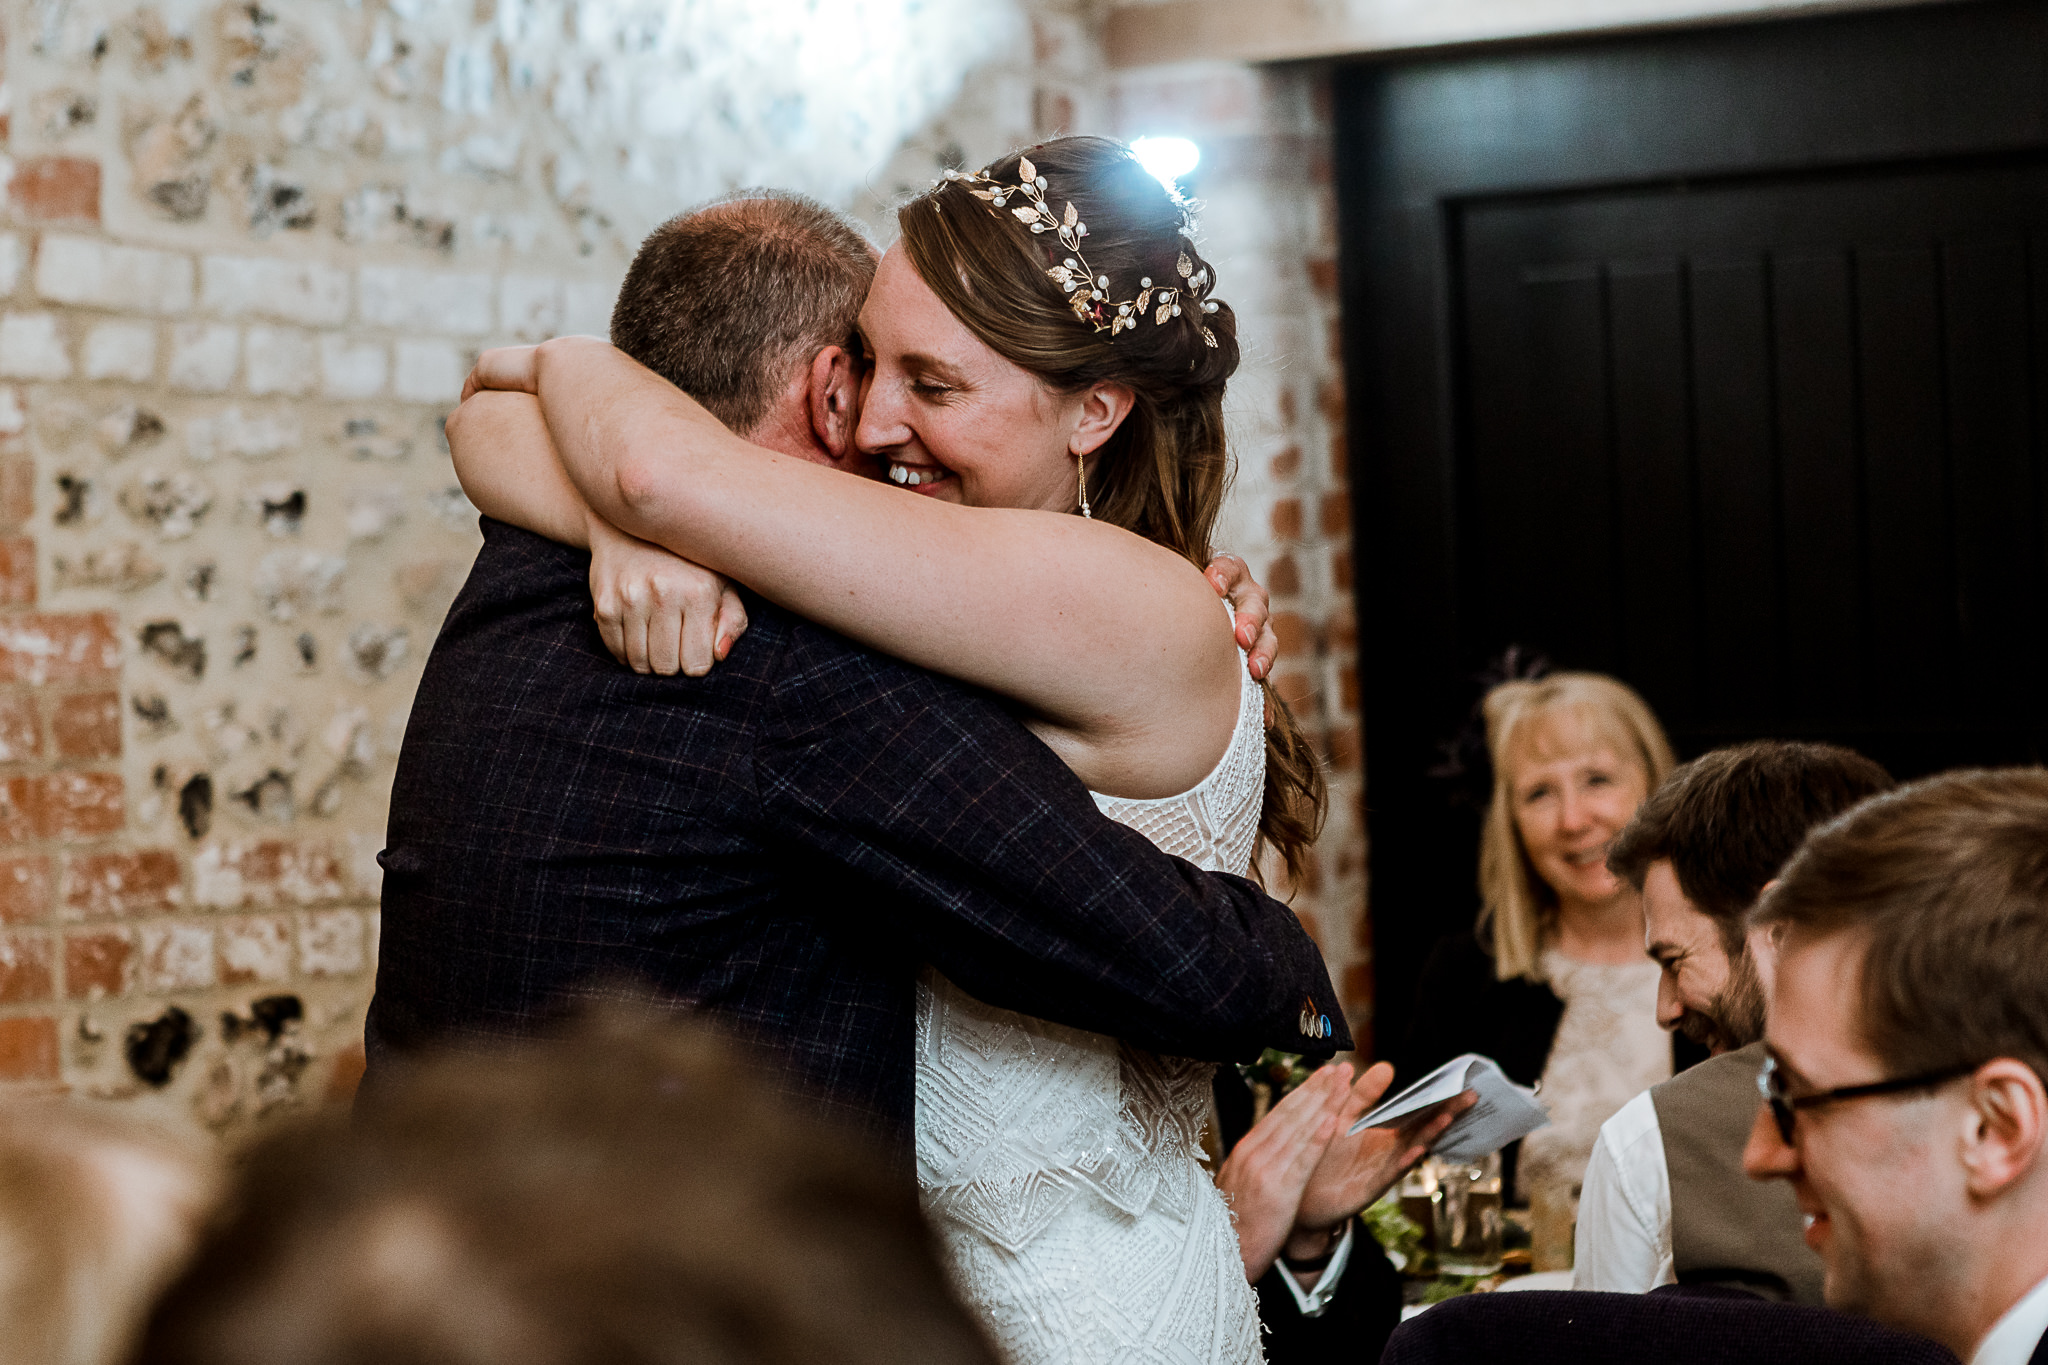 The Gathering Barn Wedding - Art by Design Photography - speeches 4